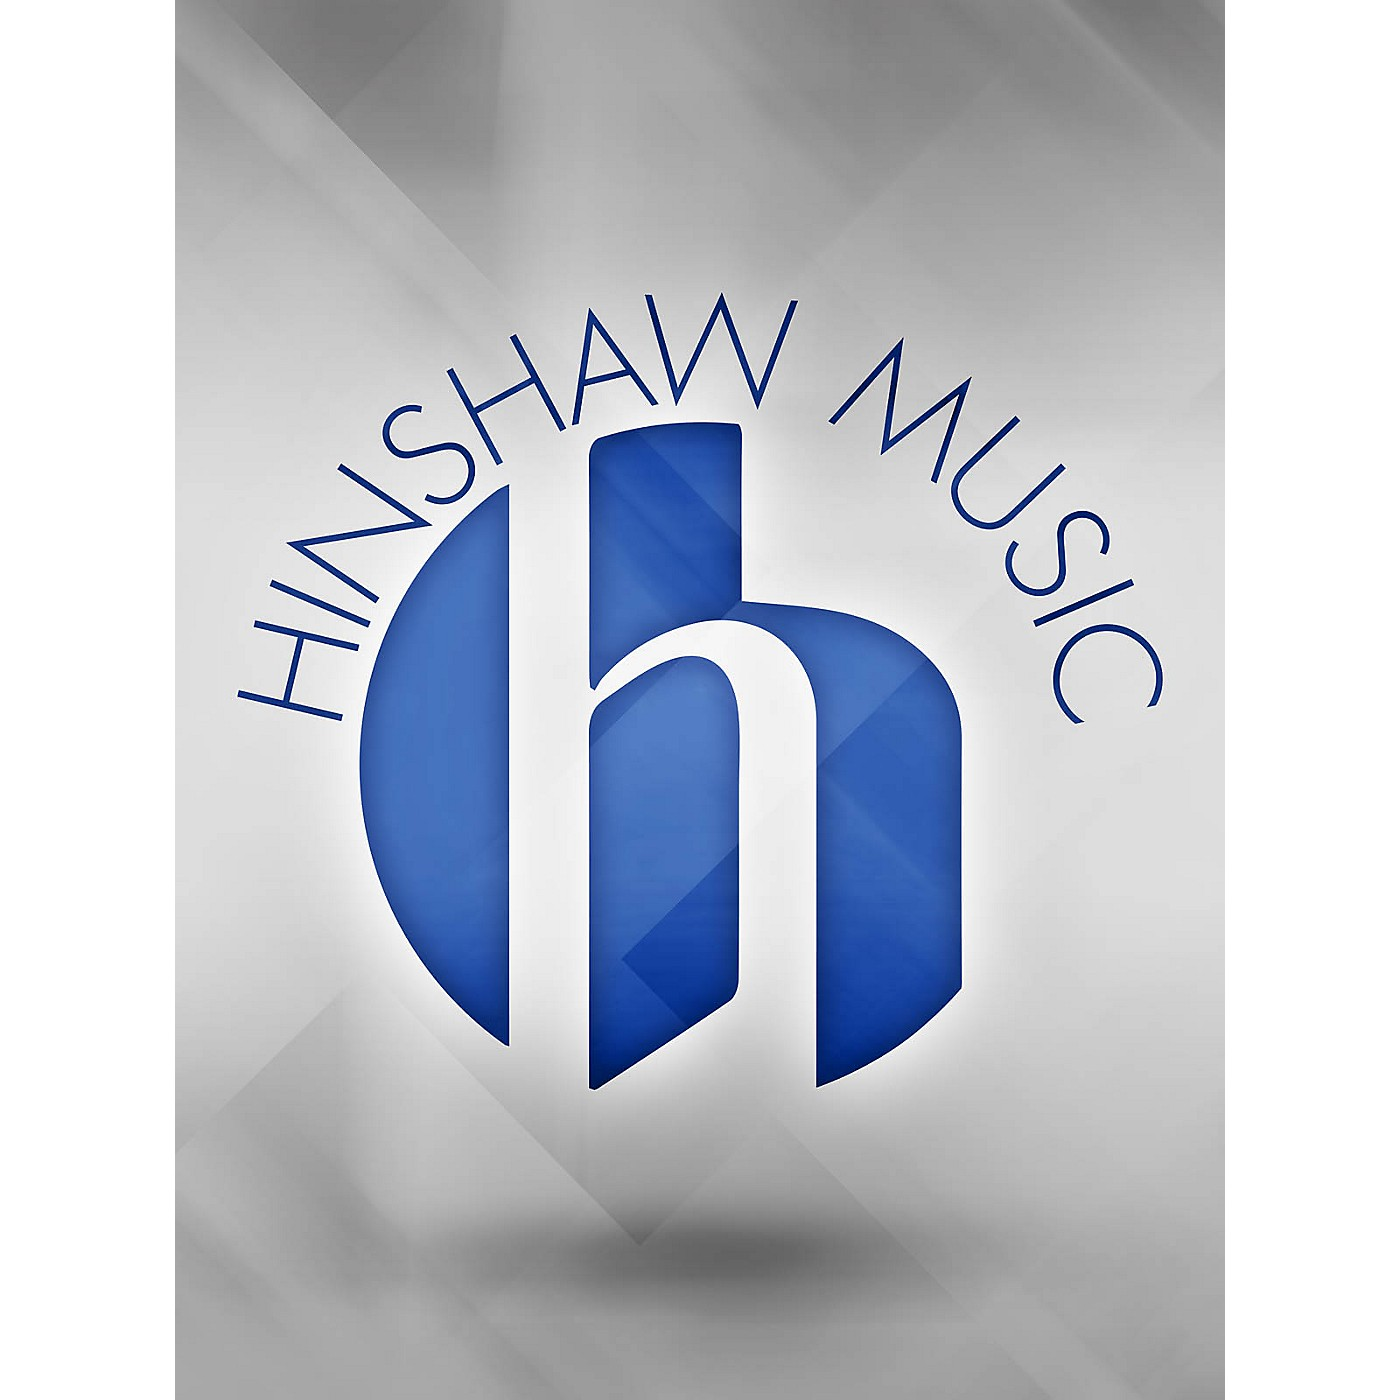 Hinshaw Music Christ Our Shepherd Faithful Is (Jesus Unser Hirt Ist Treu) SATB Composed by Peter thumbnail